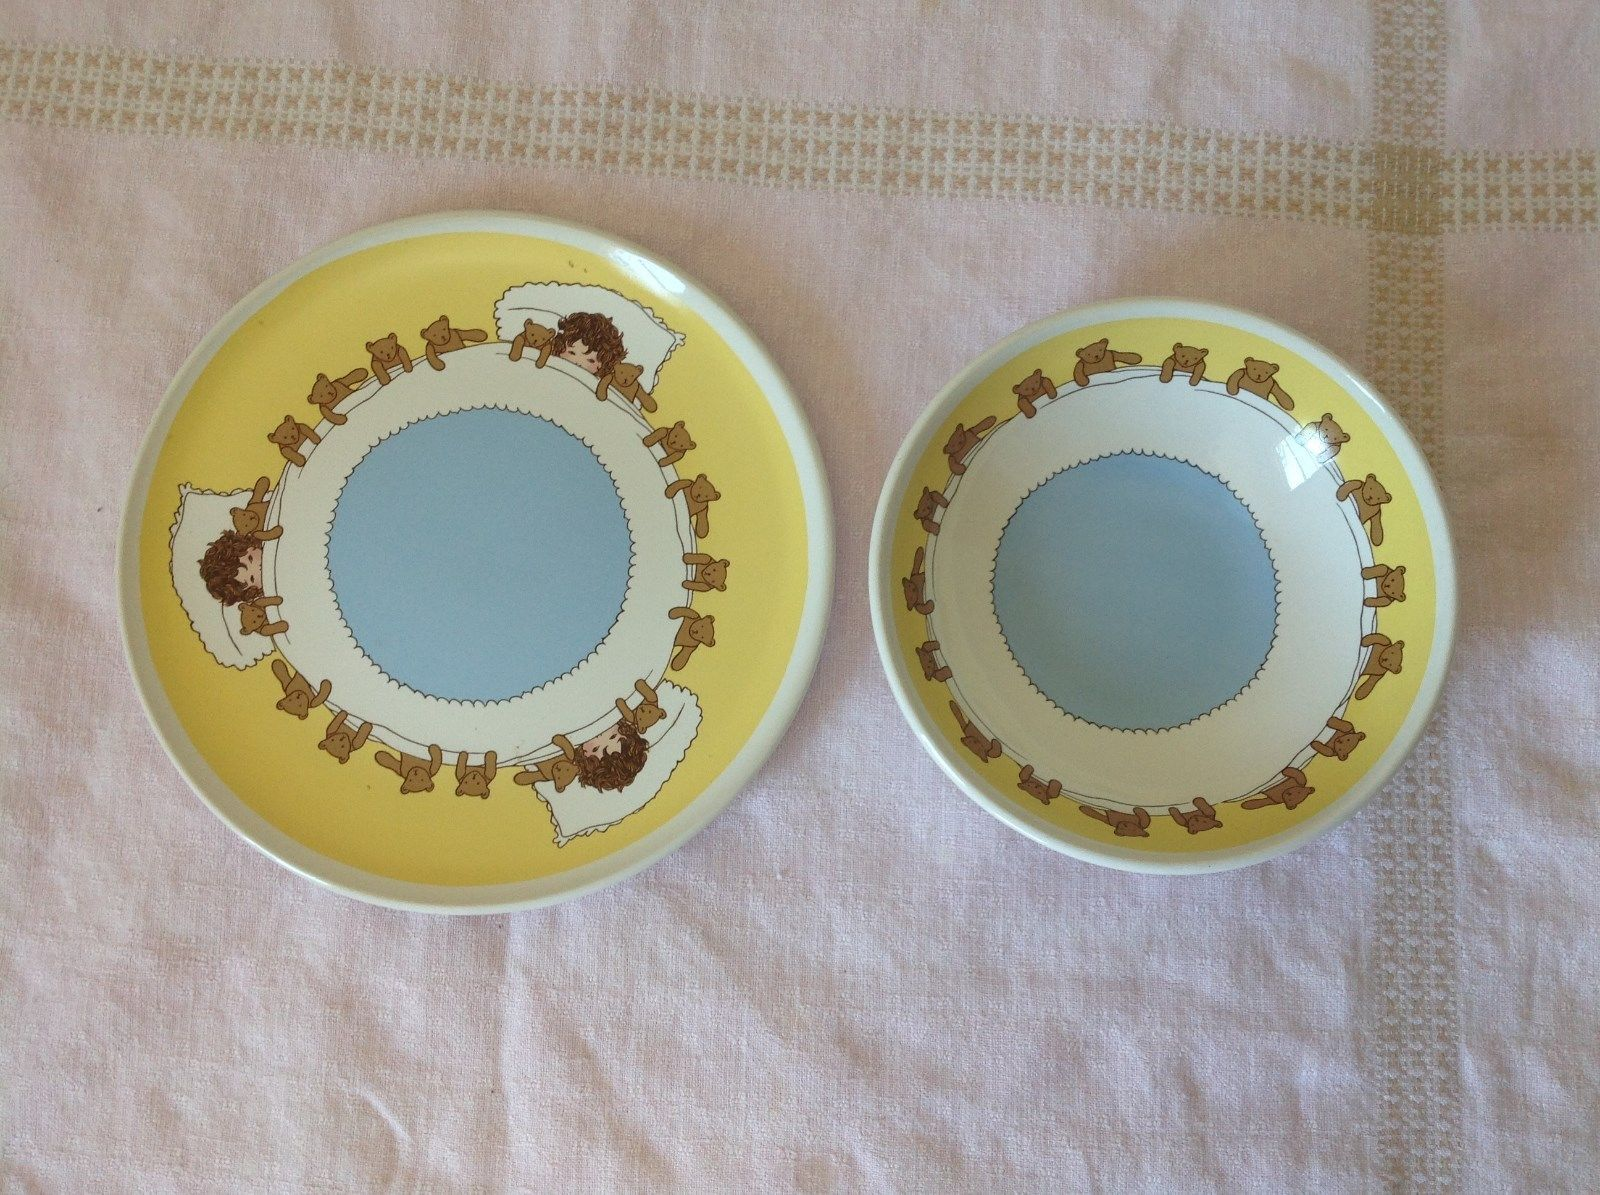 Child Dish and Bowl Set Yellow White and Blue With Teddy Bears and Child